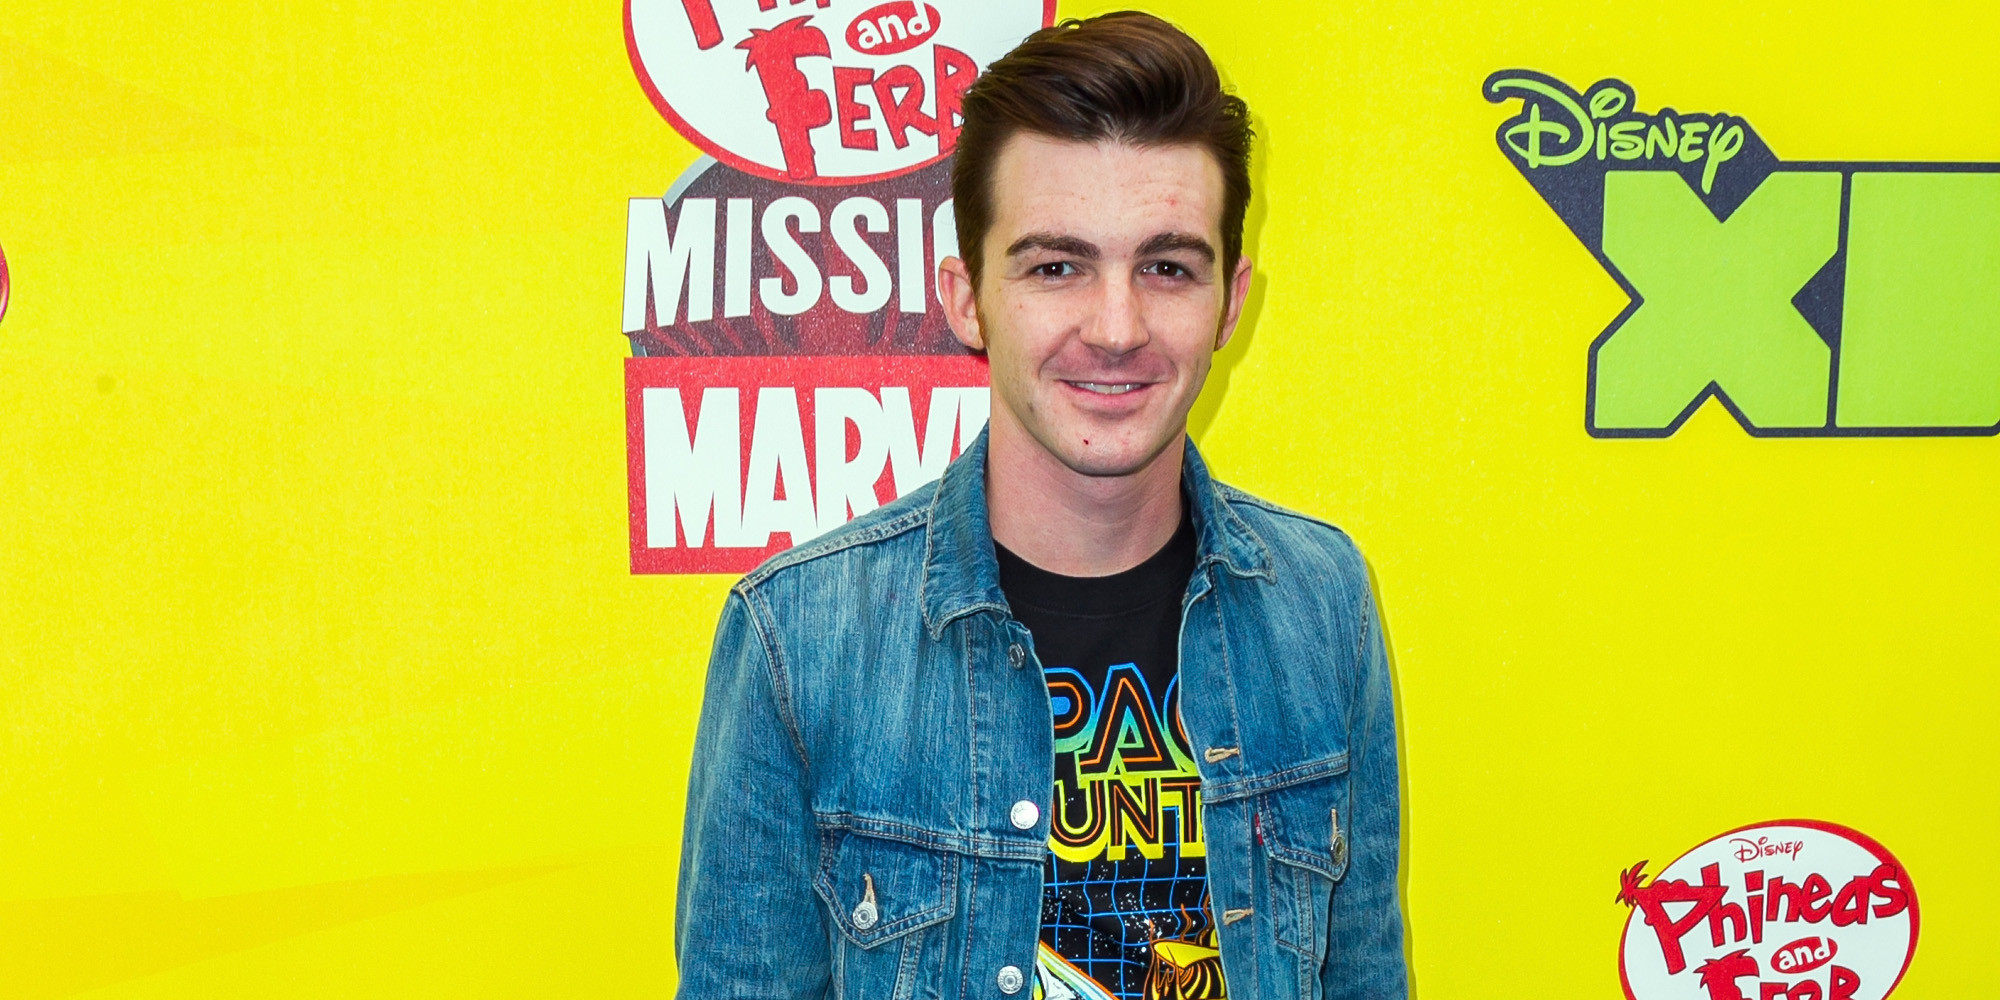 Nickelodeon star drake bell reportedly files for bankruptcy